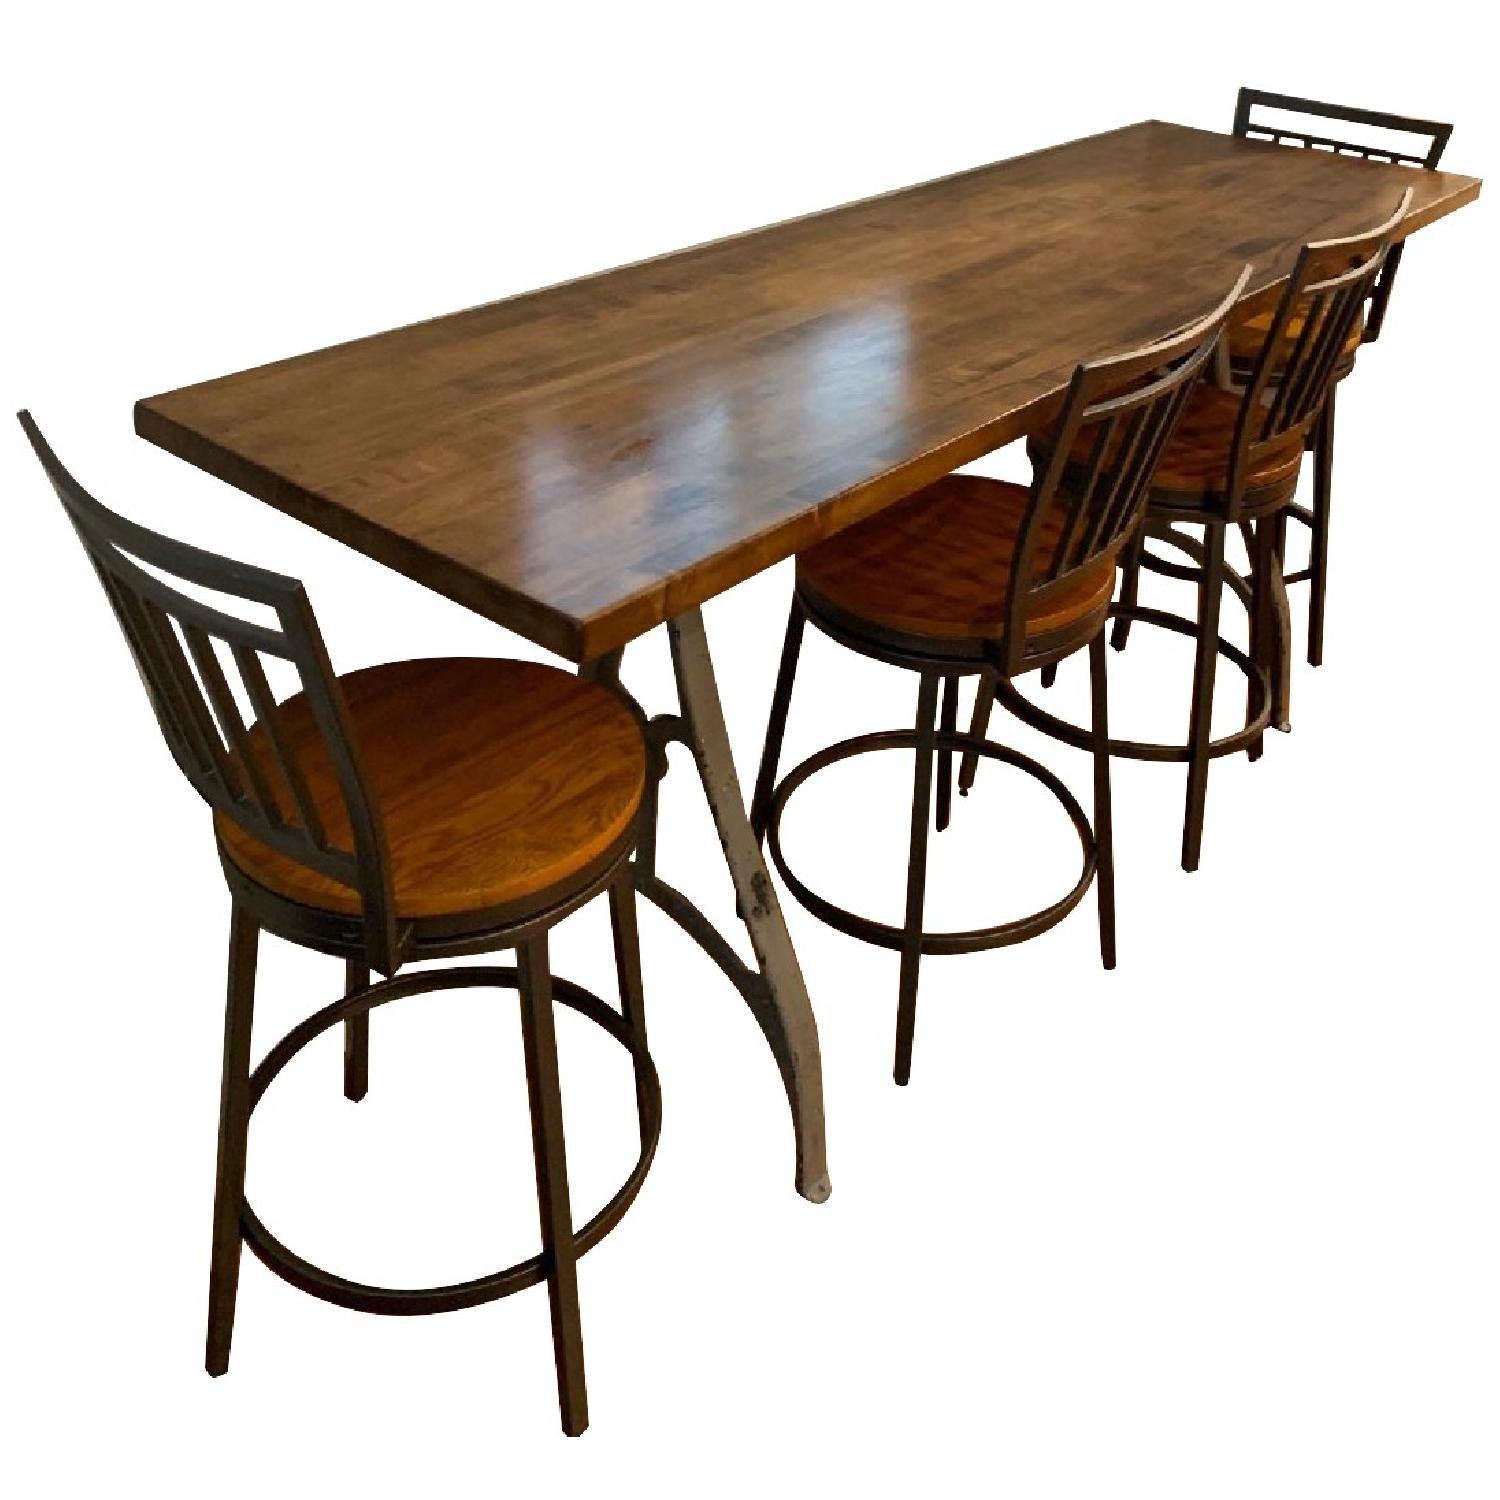 Industrial Wooden Table w/ 4 Chairs - image-0